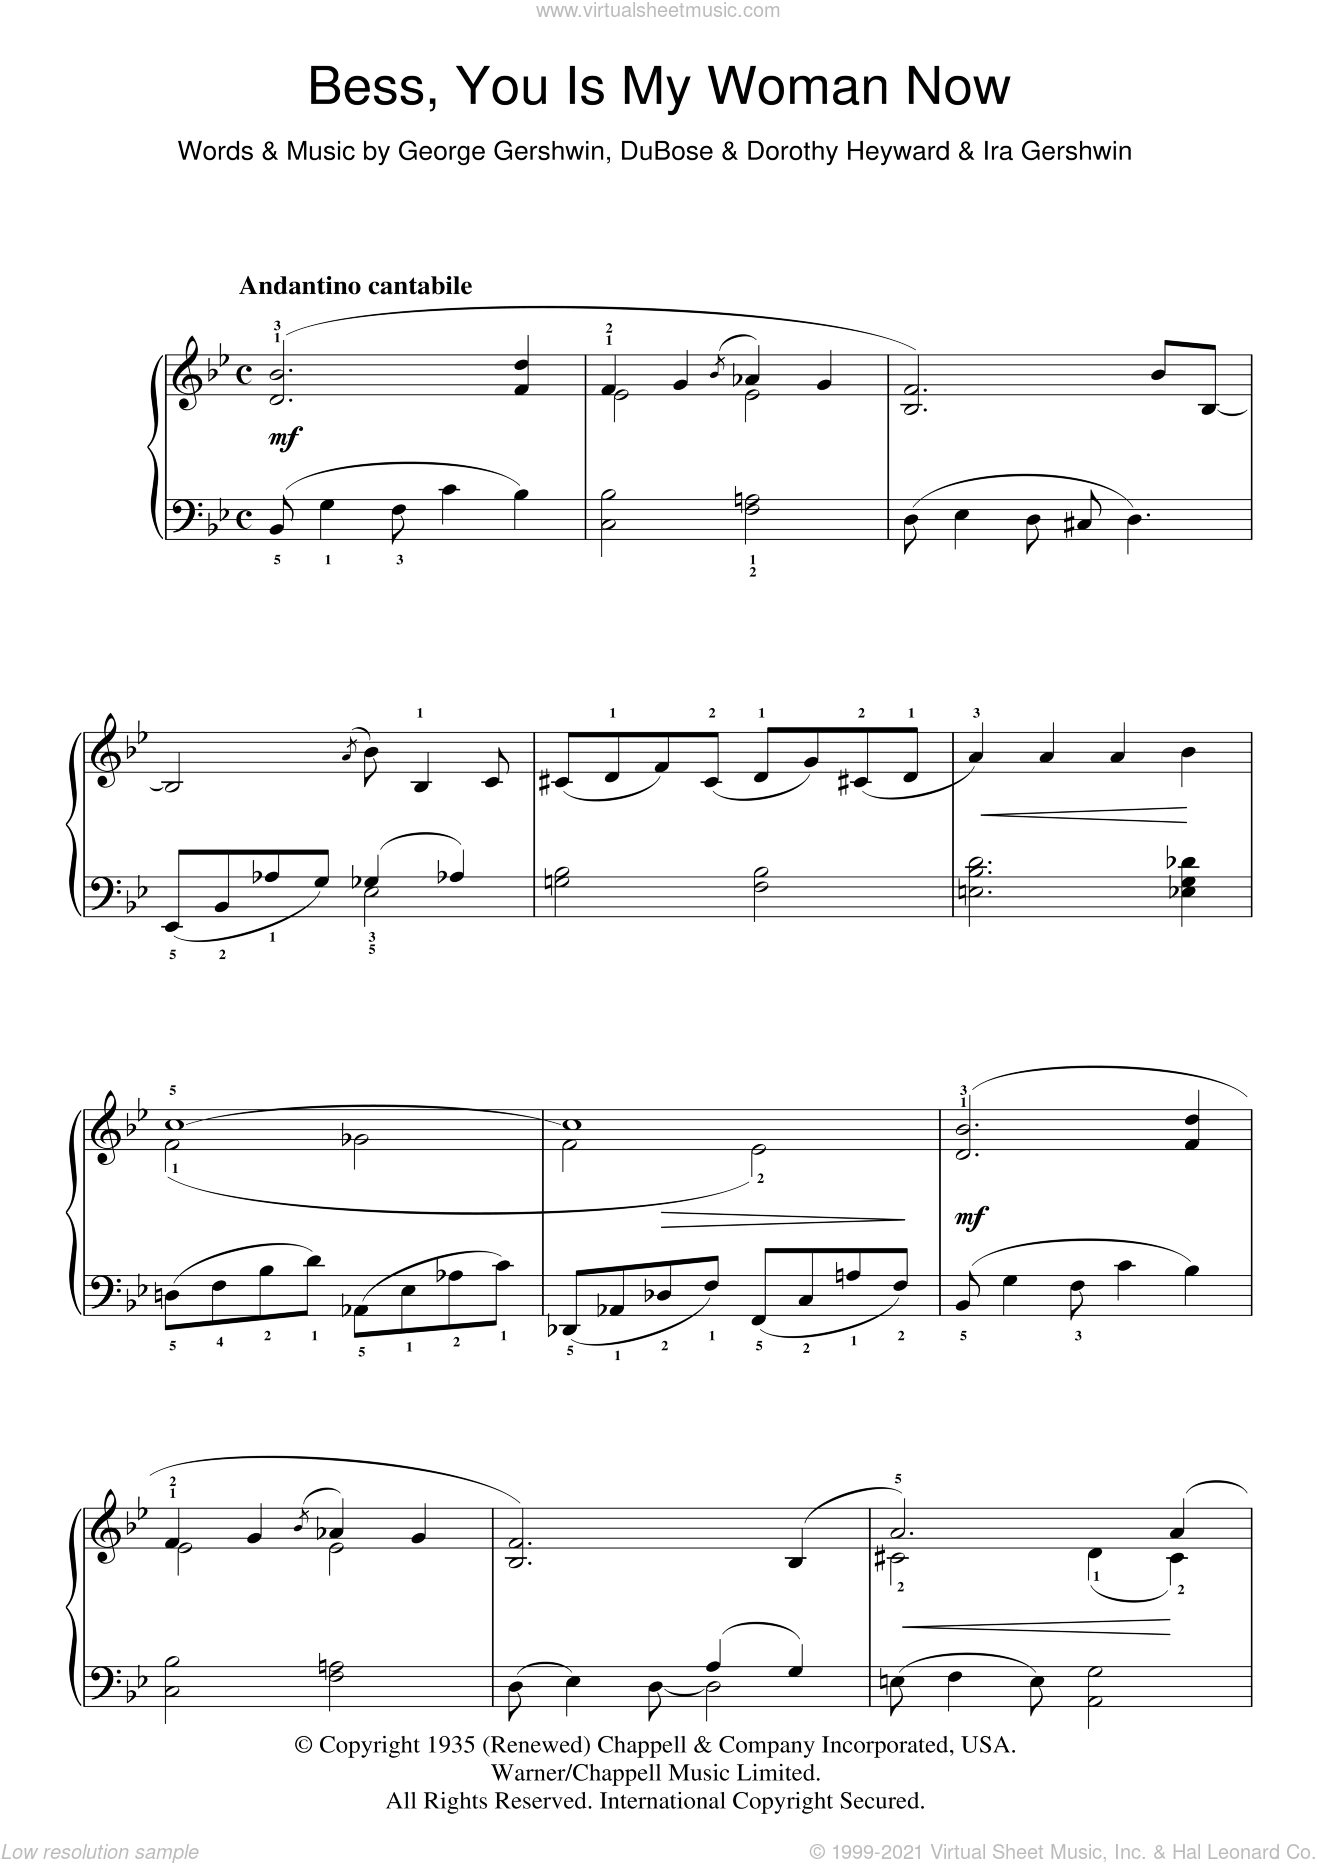 Bess, You Is My Woman Now (from Porgy And Bess) sheet music for piano solo by George Gershwin, Dorothy Heyward, DuBose and Ira Gershwin, easy skill level